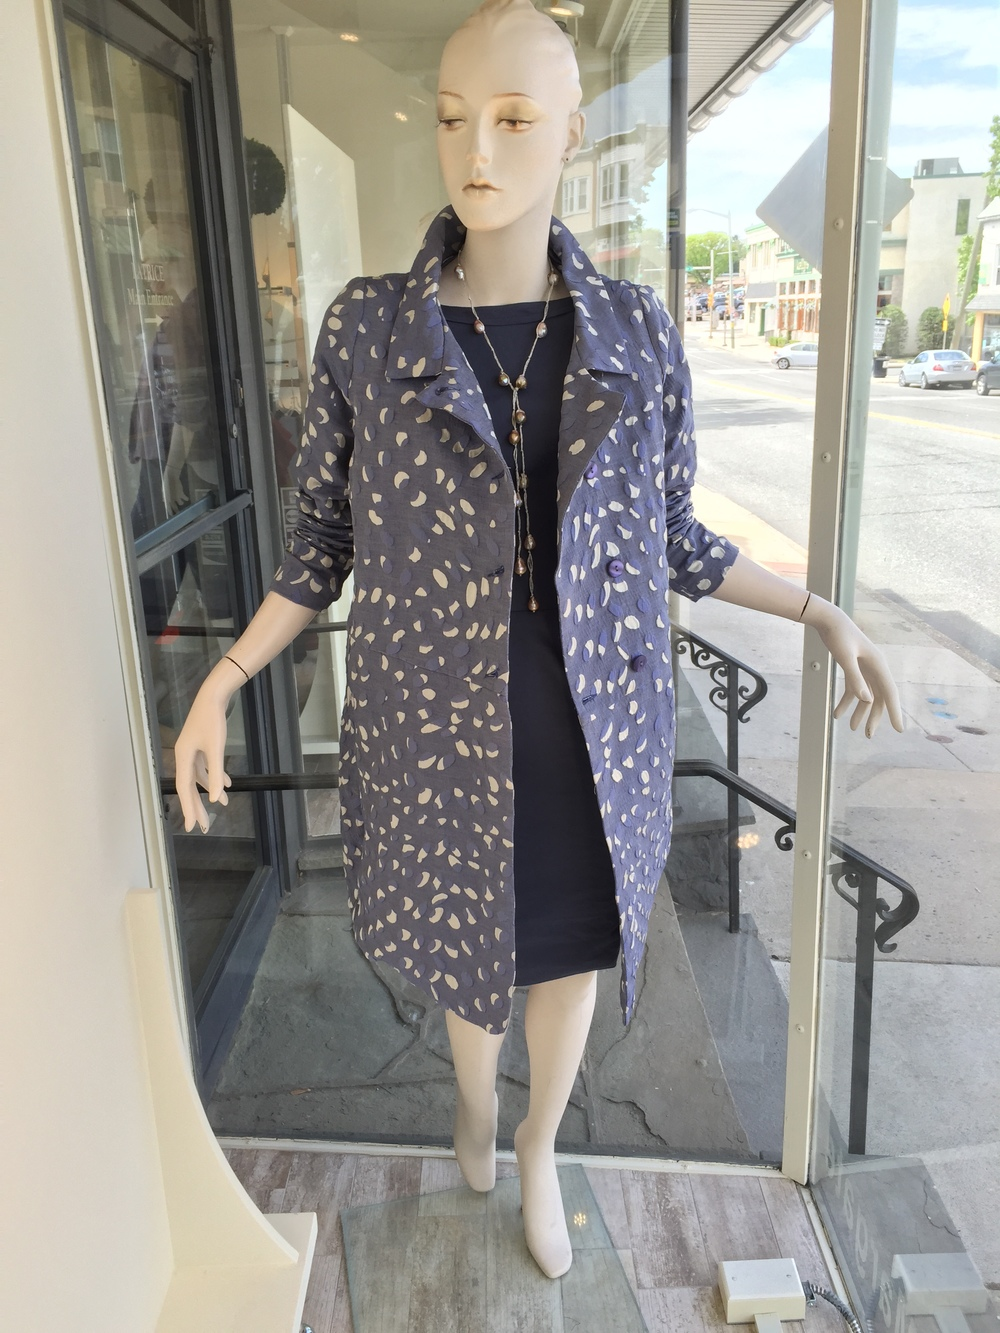 This is a gorgeous brocade coat from Lilith that acts as the perfect topper to this little cotton dress or even over jeans for a more casual look.  We also added a gorgeous single strand baroque pearl necklace from our Italian jewelry designer.